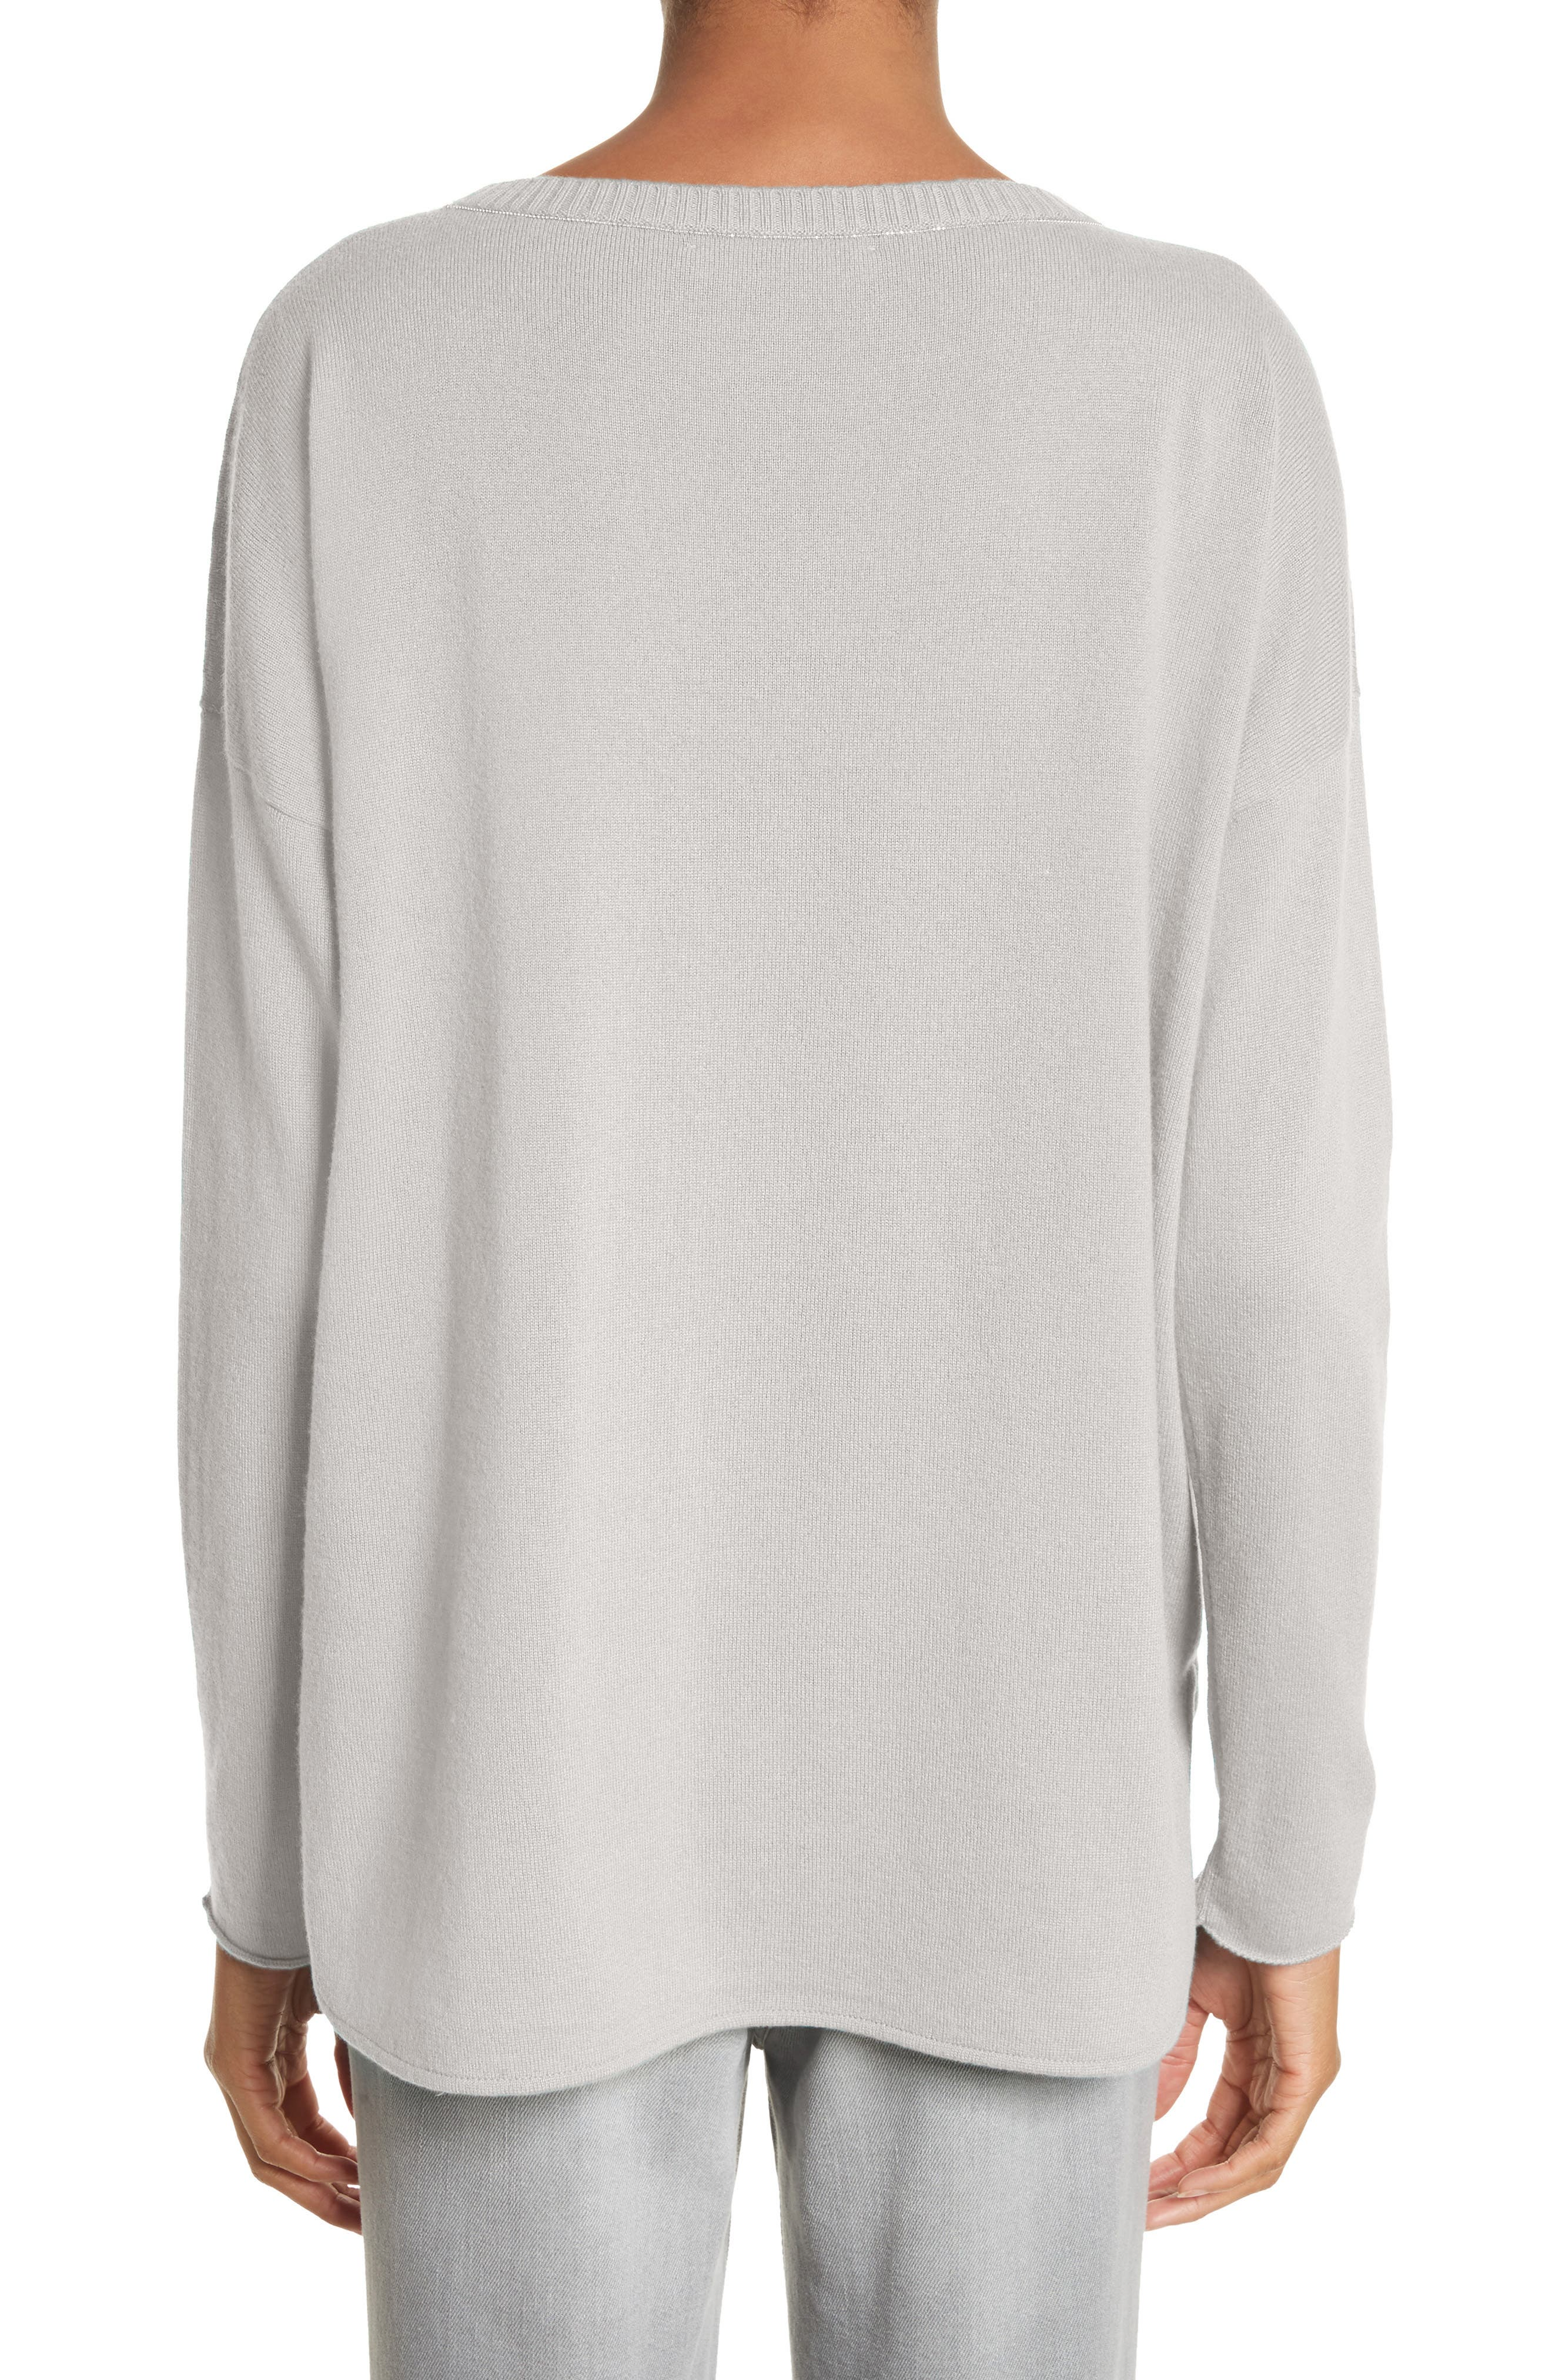 Beaded Cashmere Sweater,                             Alternate thumbnail 2, color,                             Grey